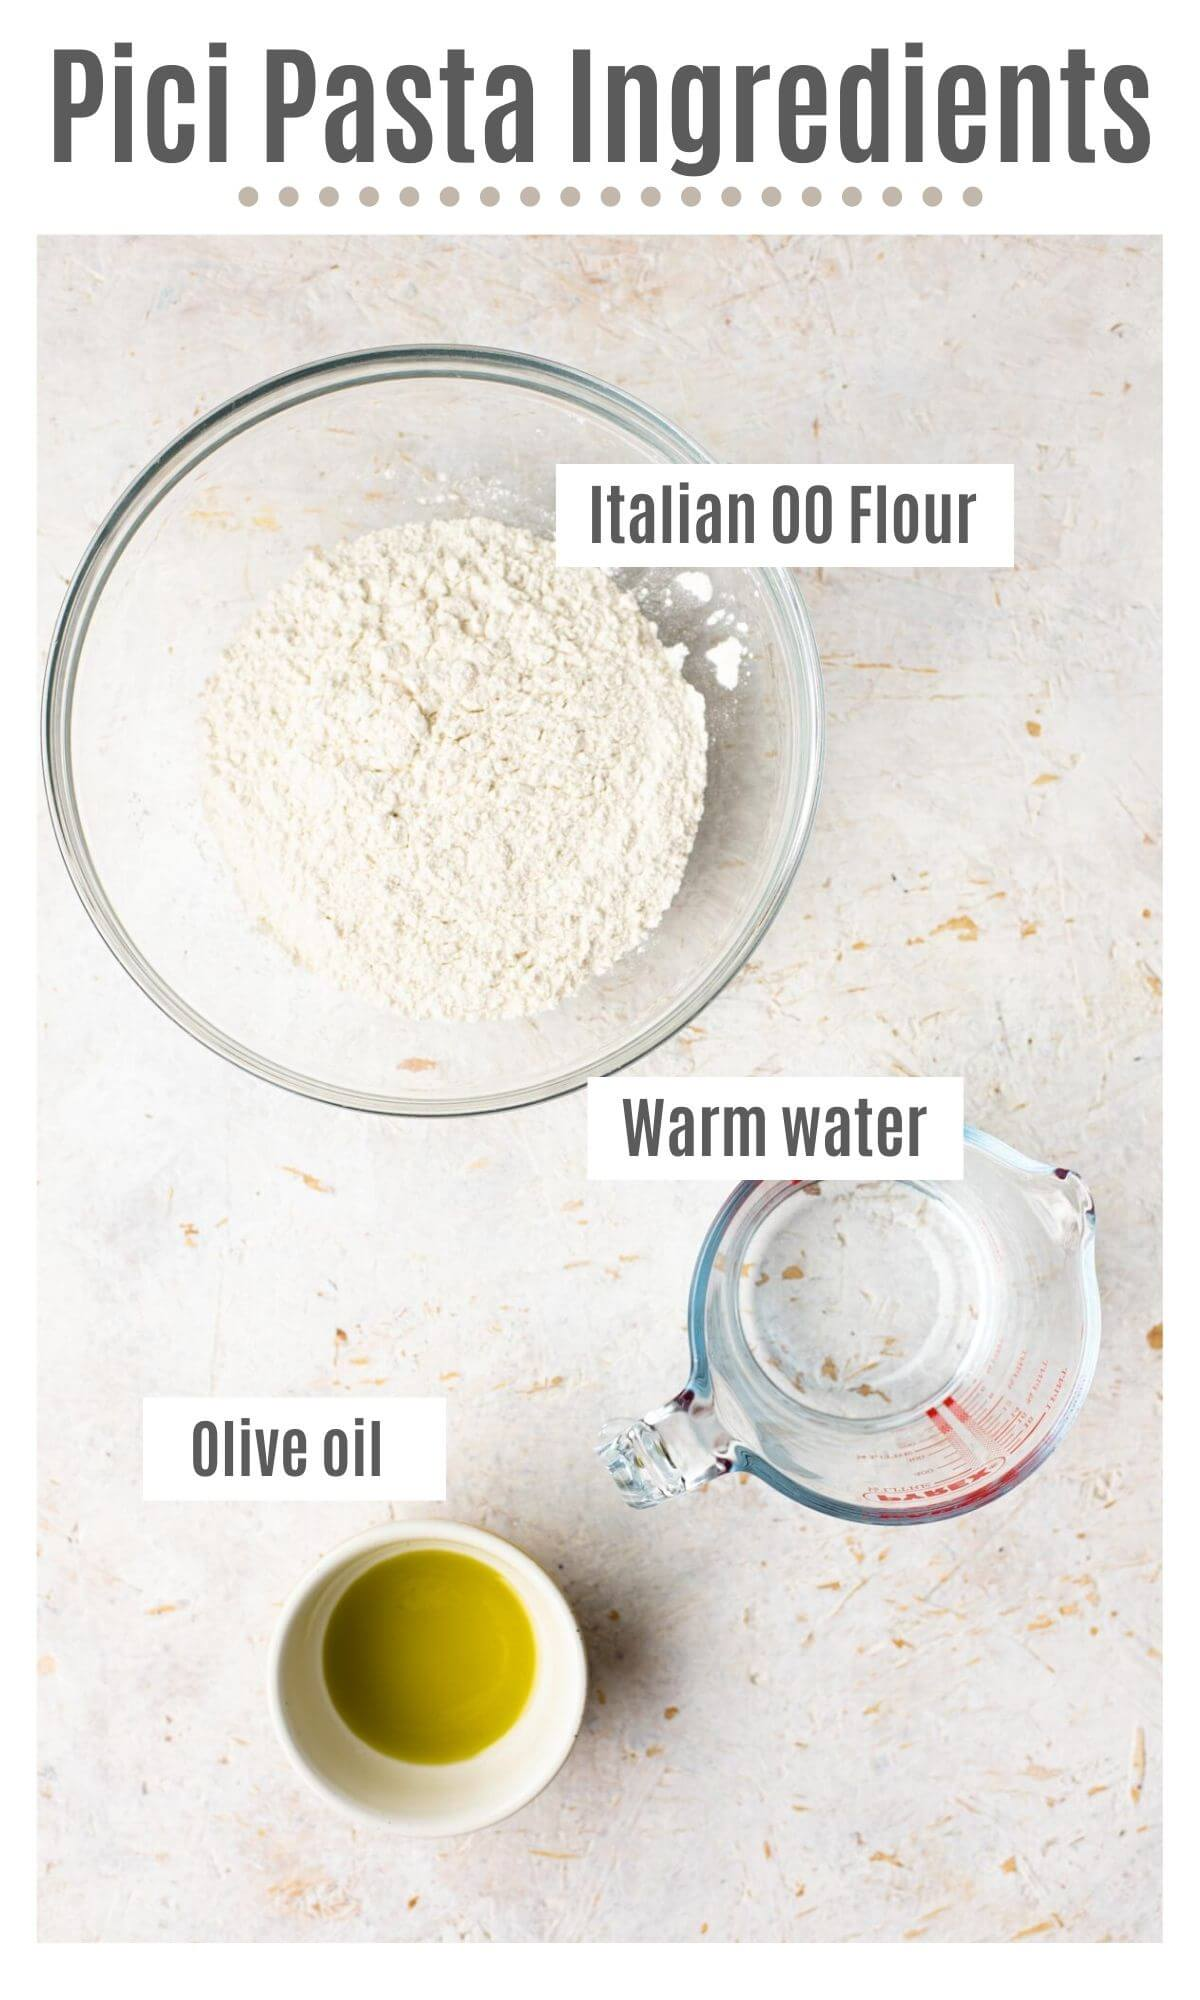 An overhead shot of all the ingredients you need to make pici pasta